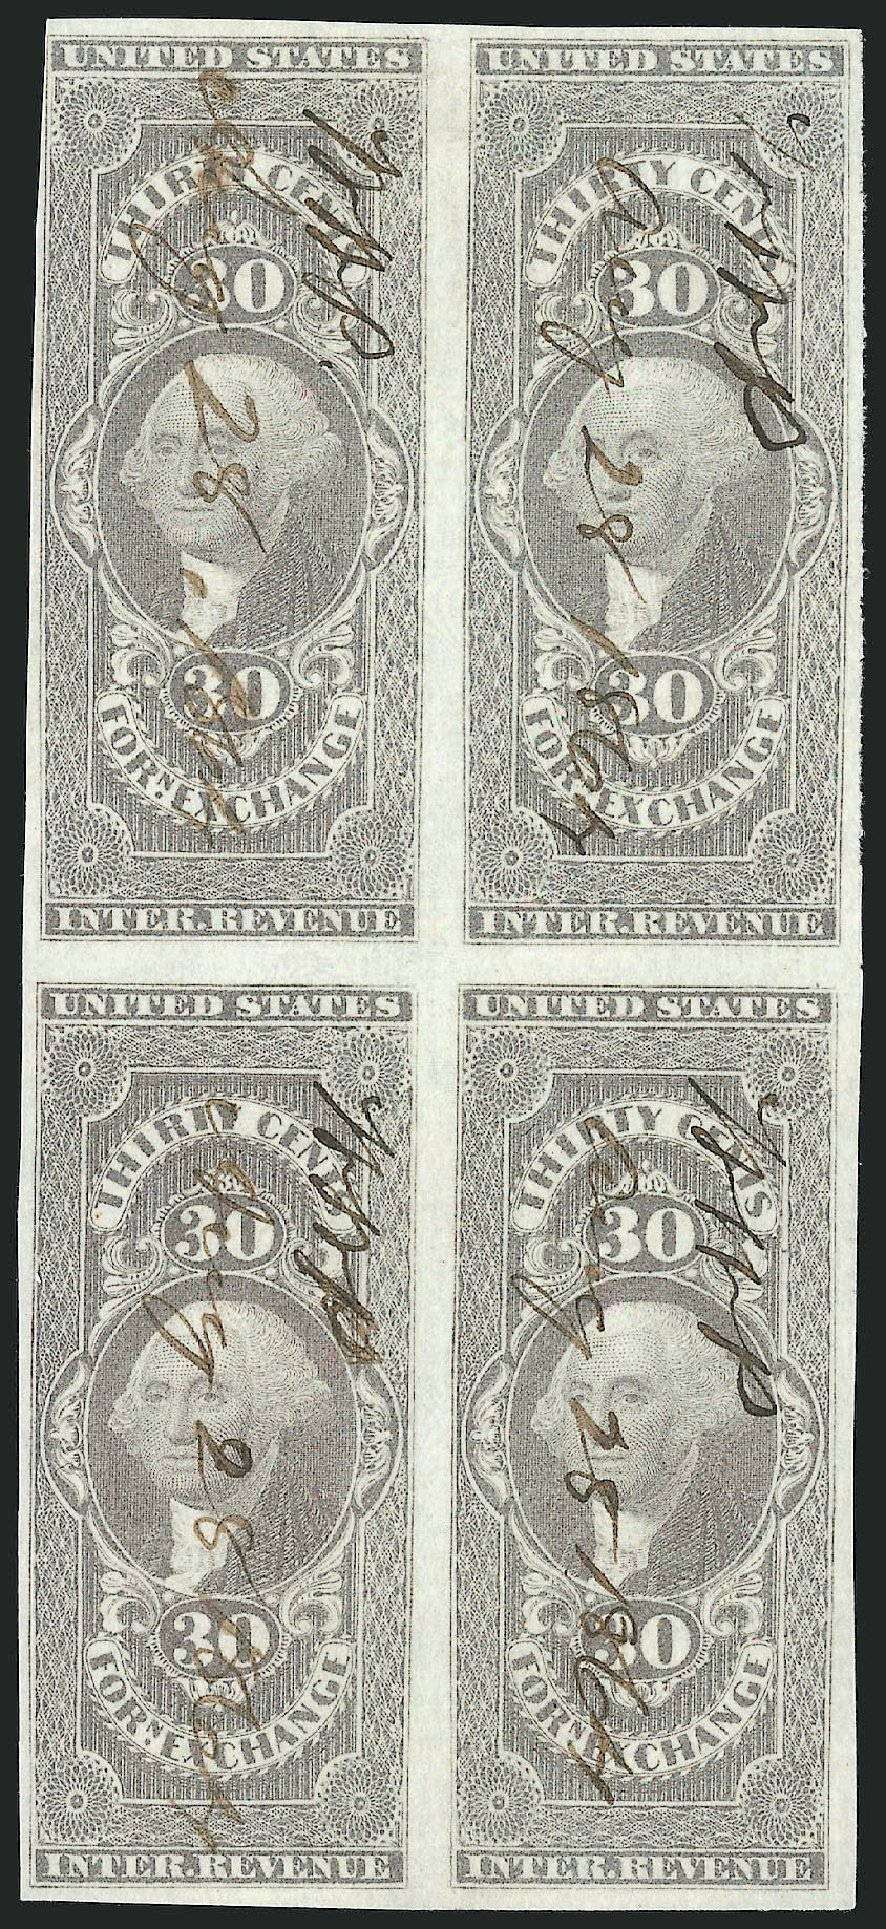 US Stamps Price Scott Catalog #R51 - 30c 1862 Revenue Foreign Exchange. Robert Siegel Auction Galleries, Dec 2014, Sale 1089, Lot 342